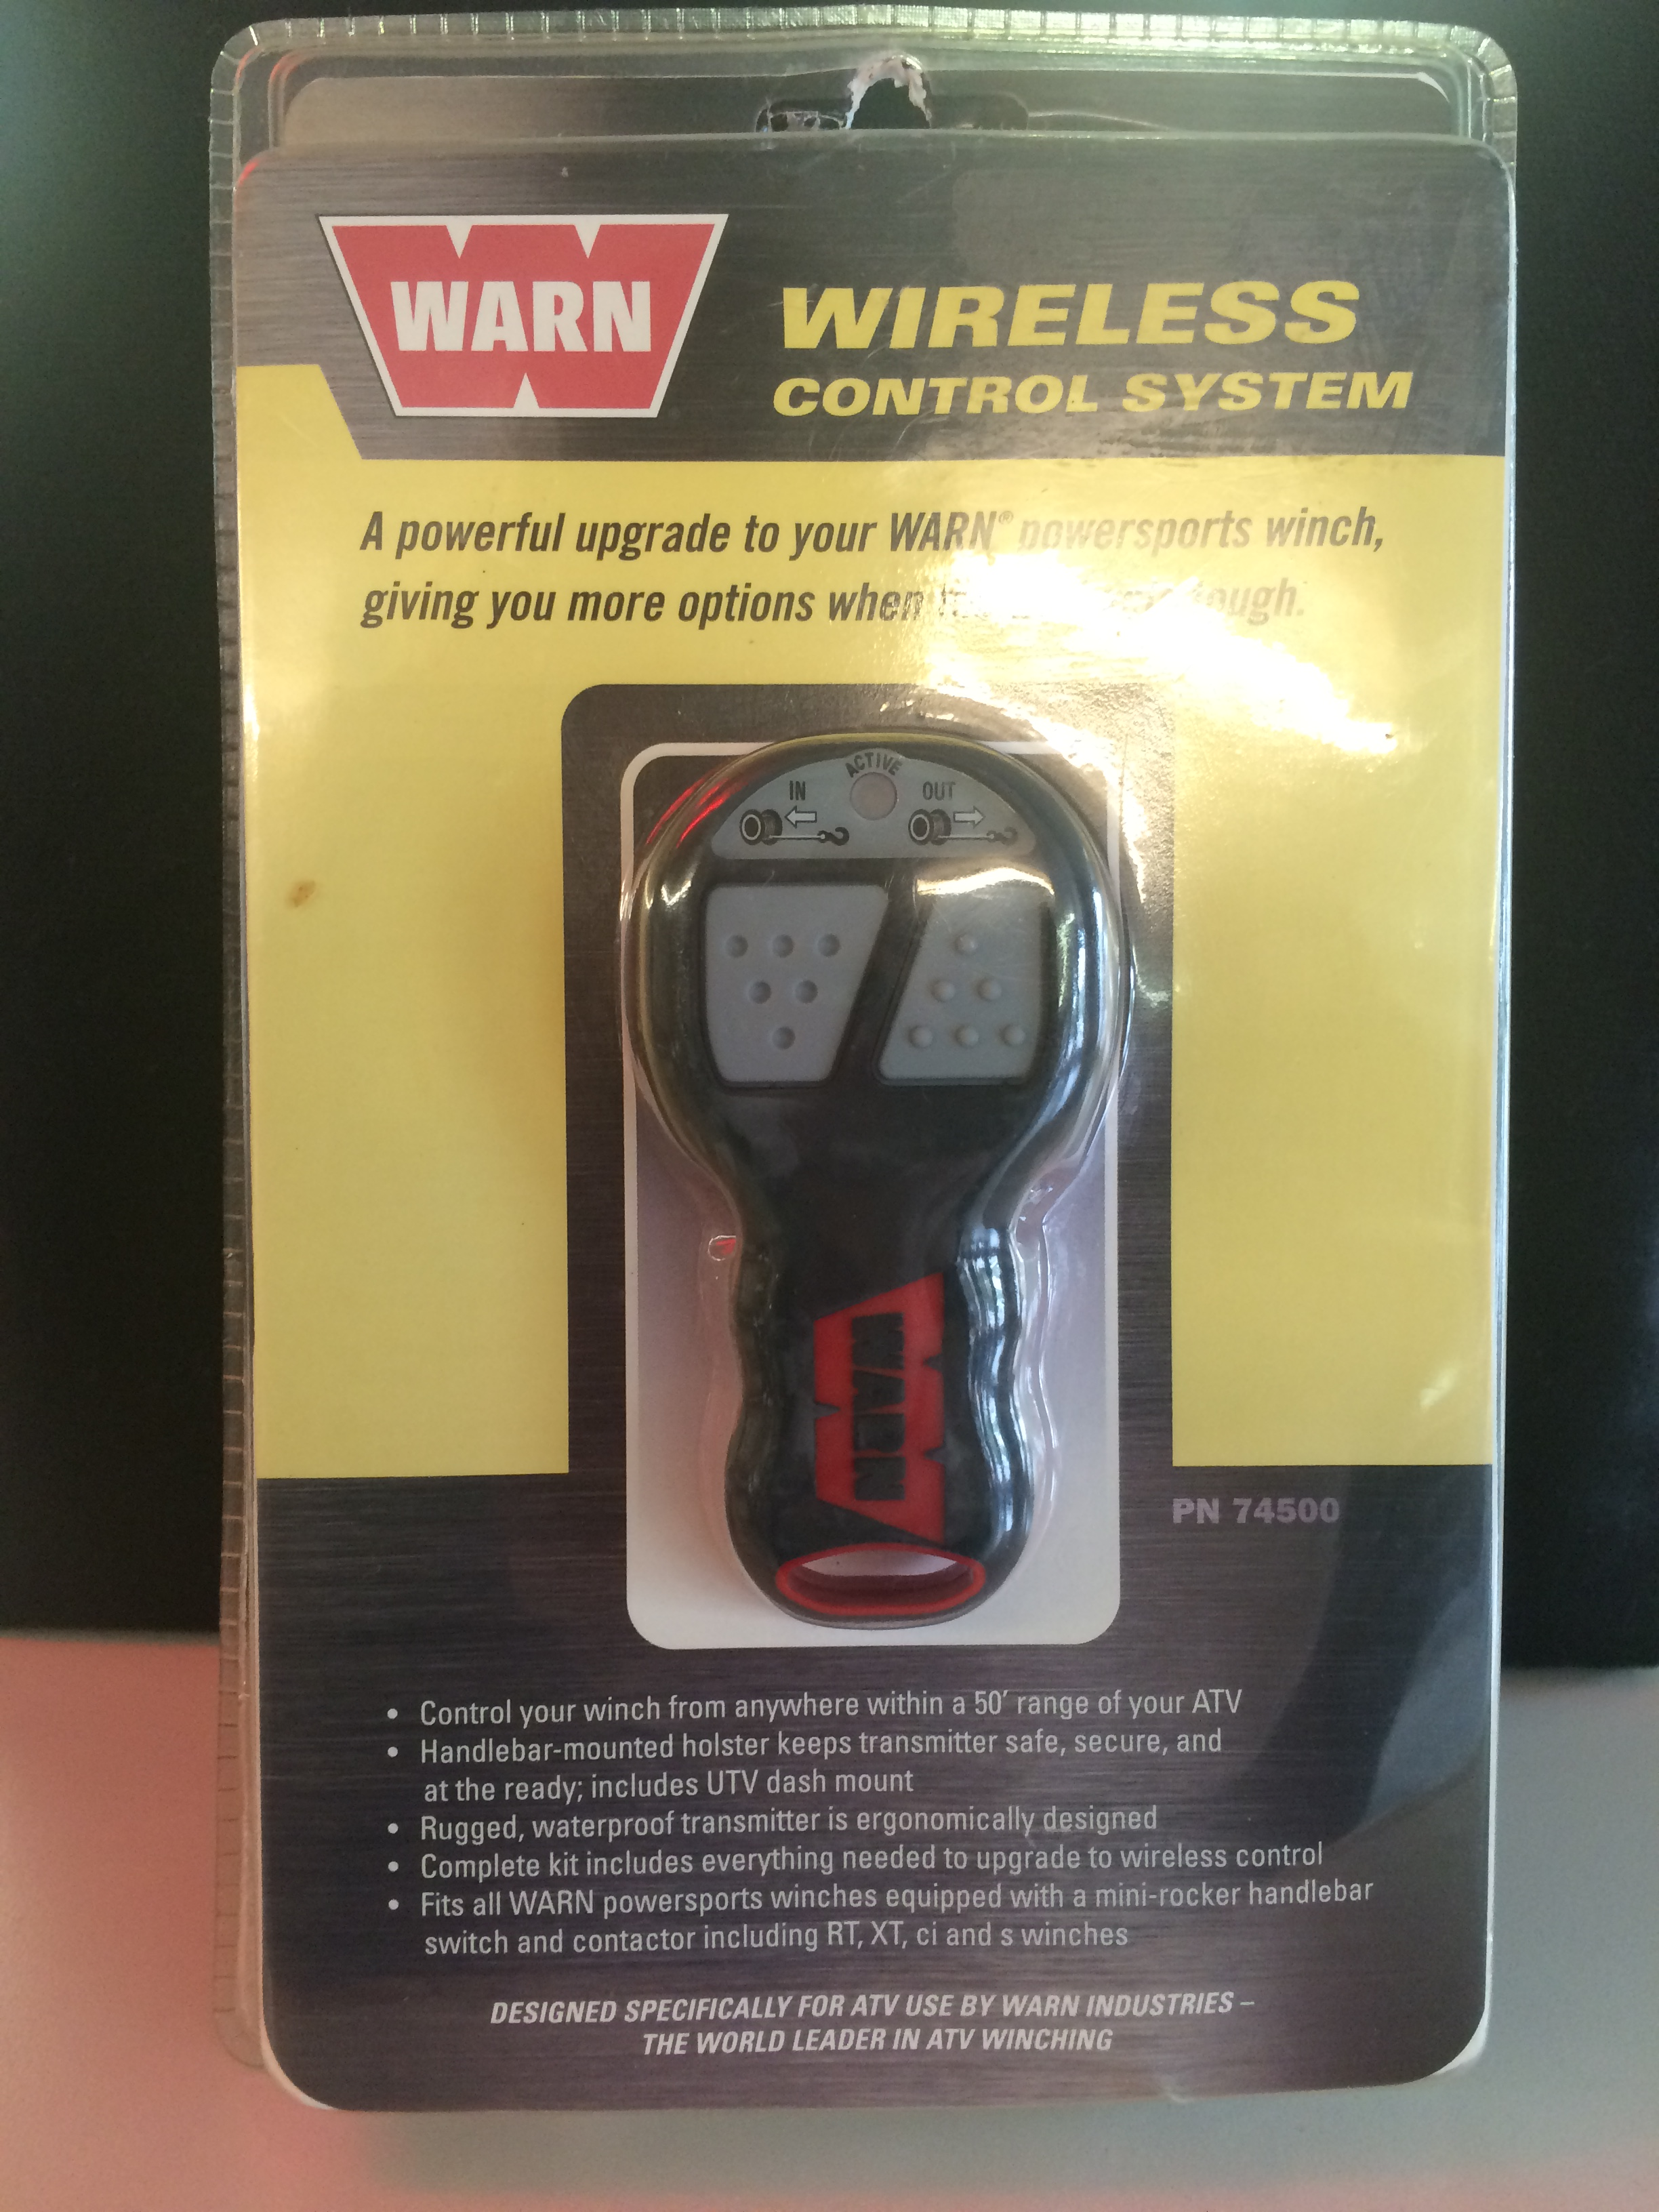 WIRELESS CONTROL FOR YOUR WINCH